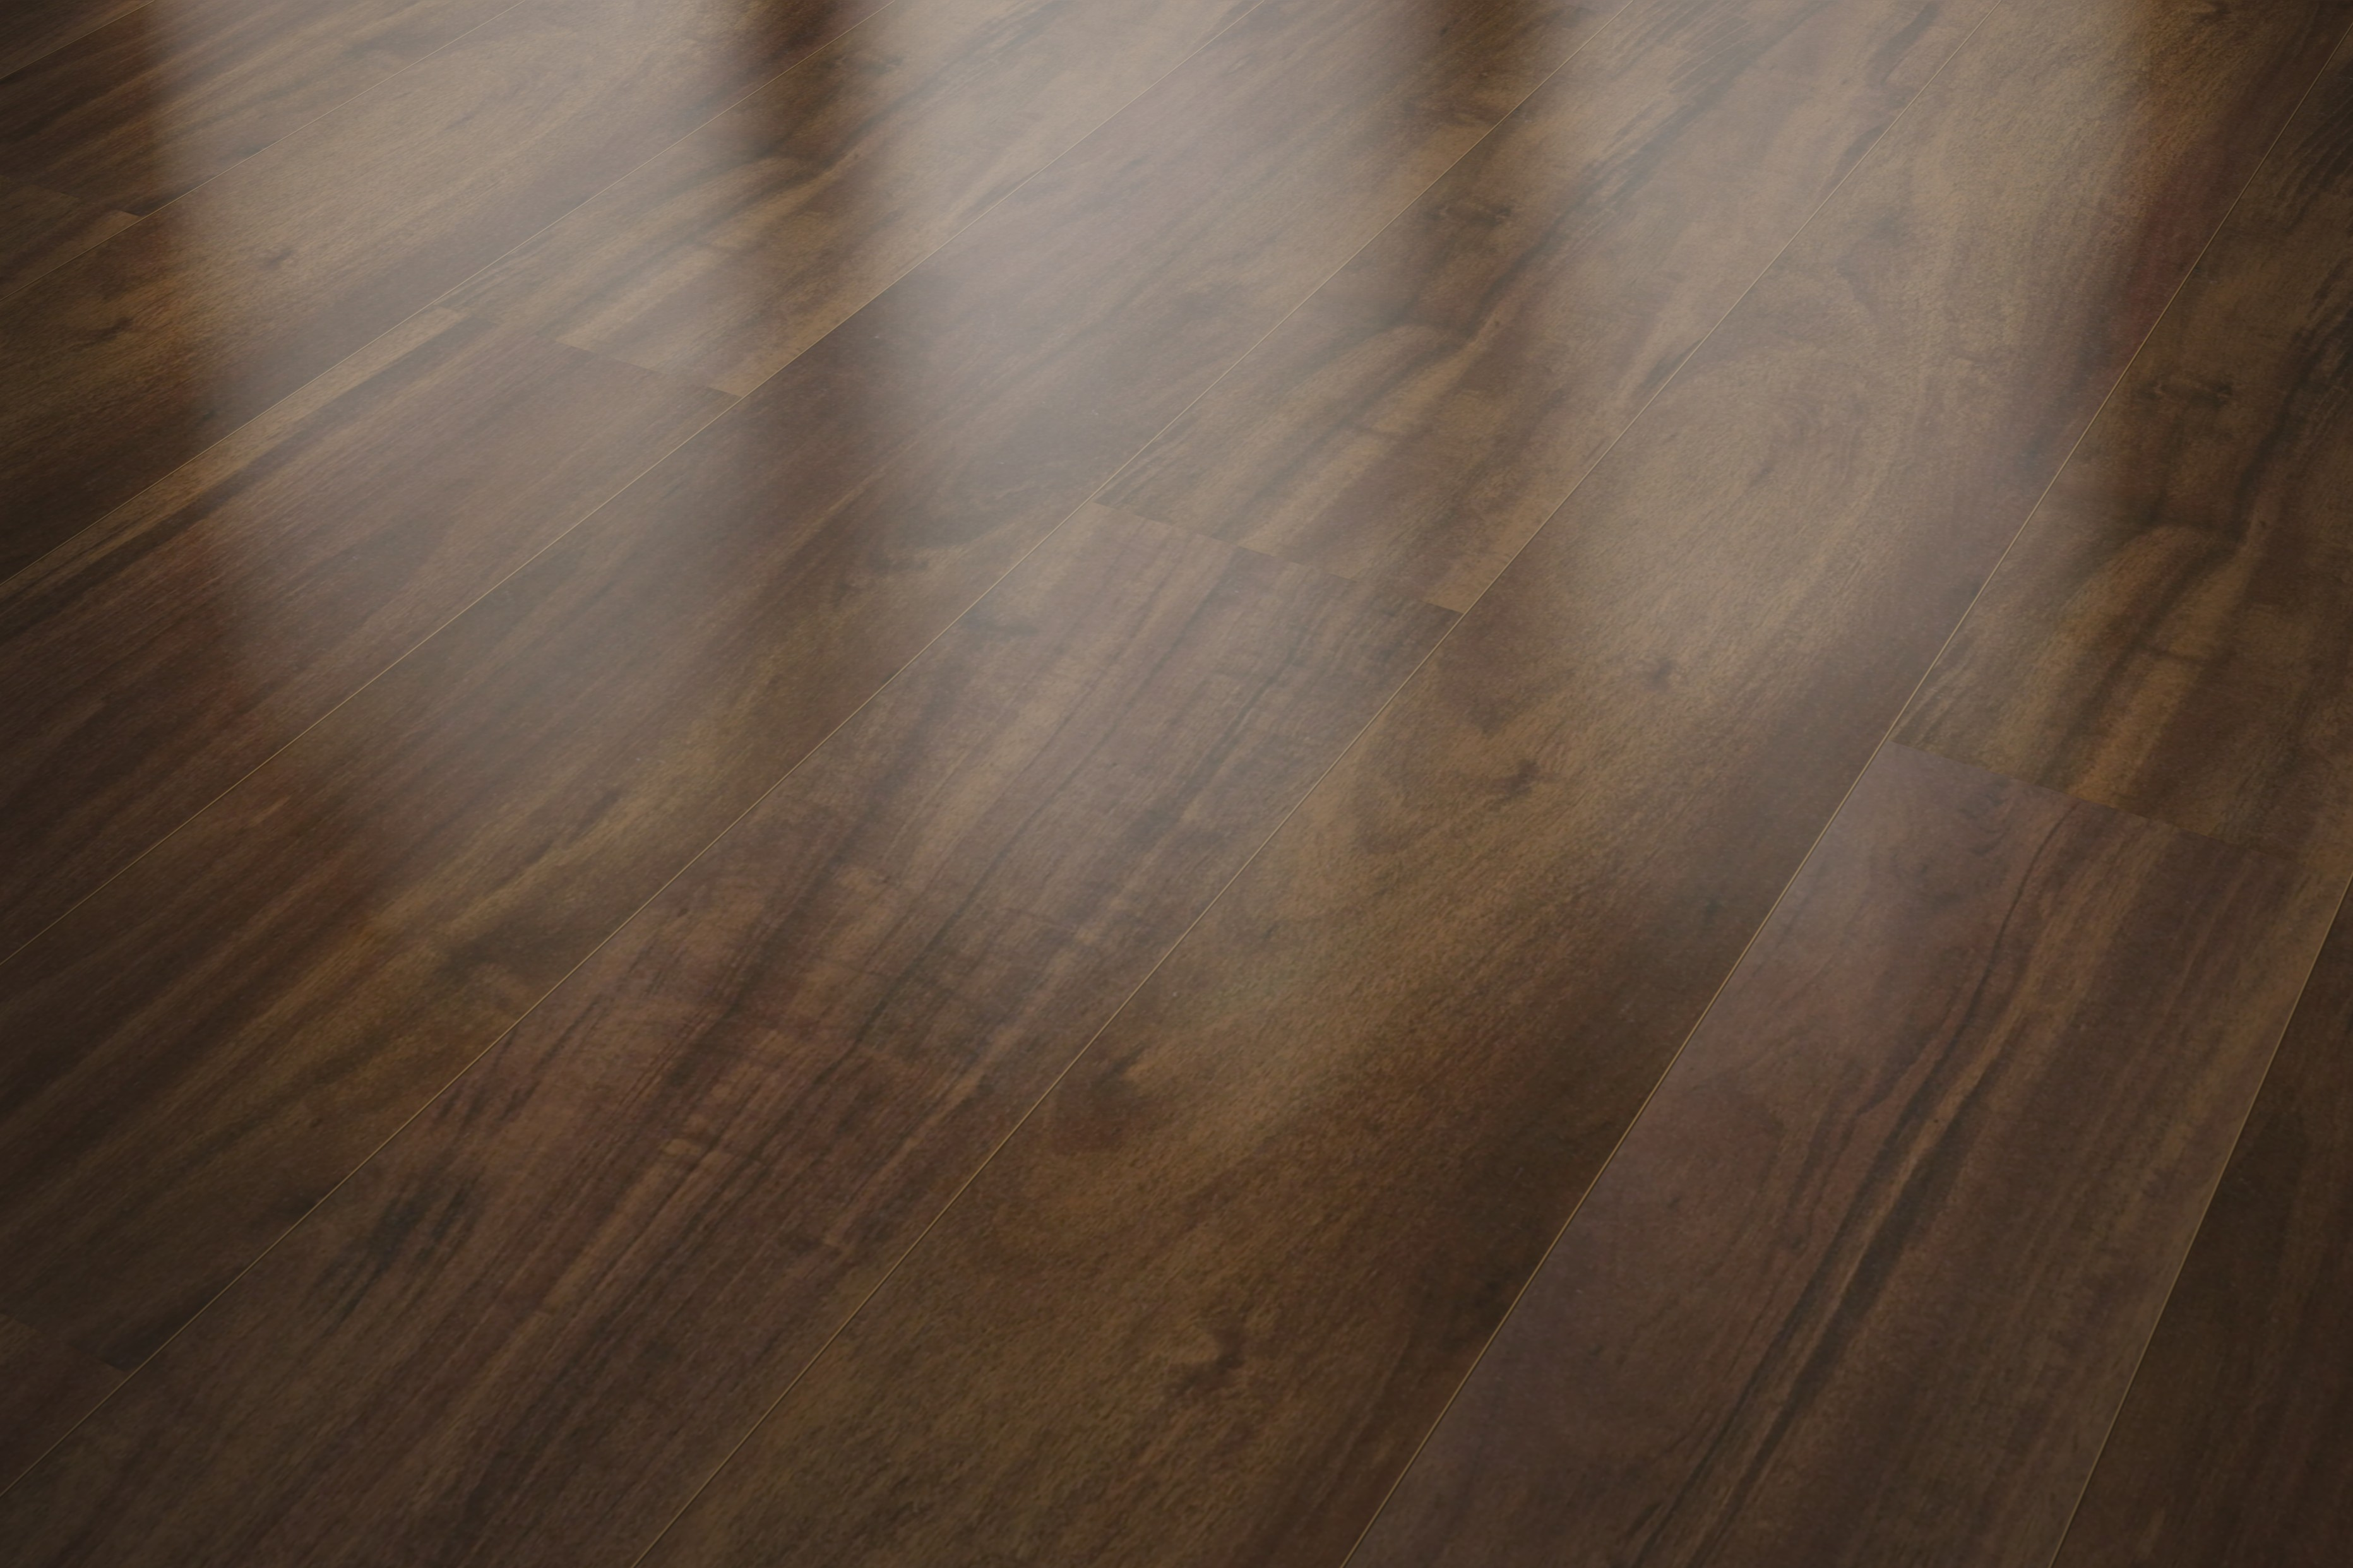 hardwood using home inside of exotic floors walnut and make engineered image decor your brazilian cozy cookwithalocal more flooring